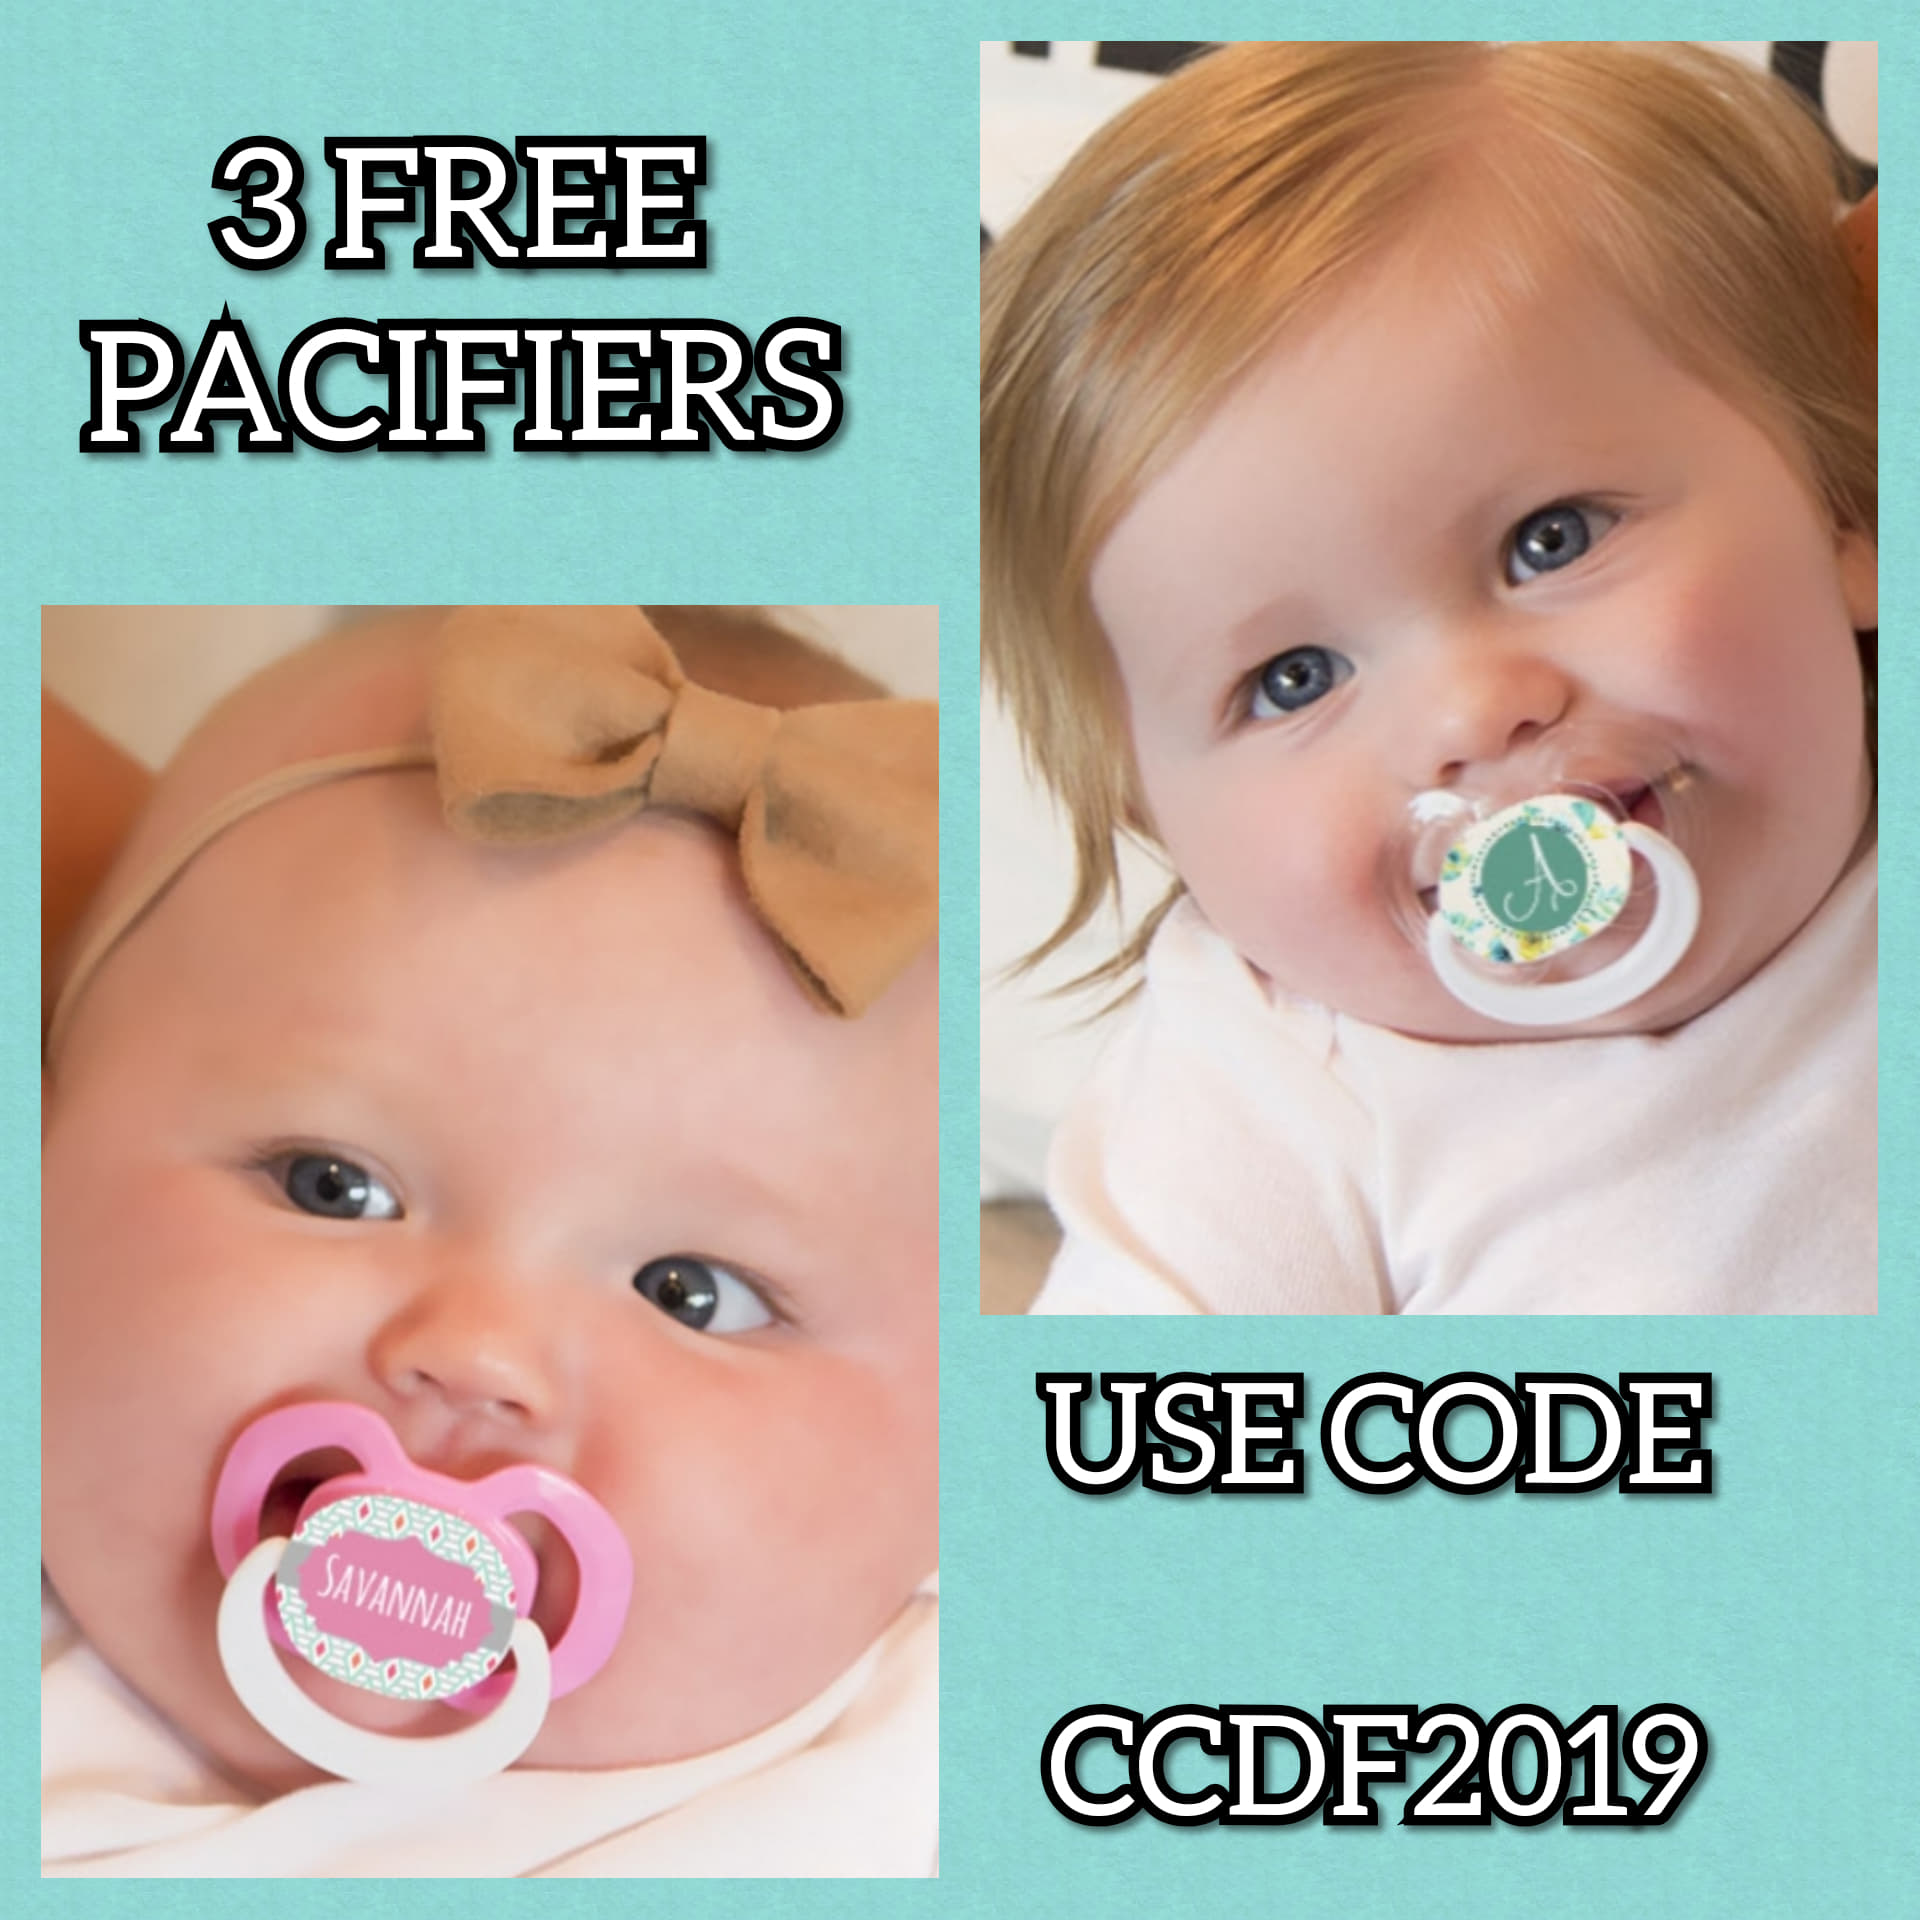 Free Customized Pacifiers Just Pay Shipping